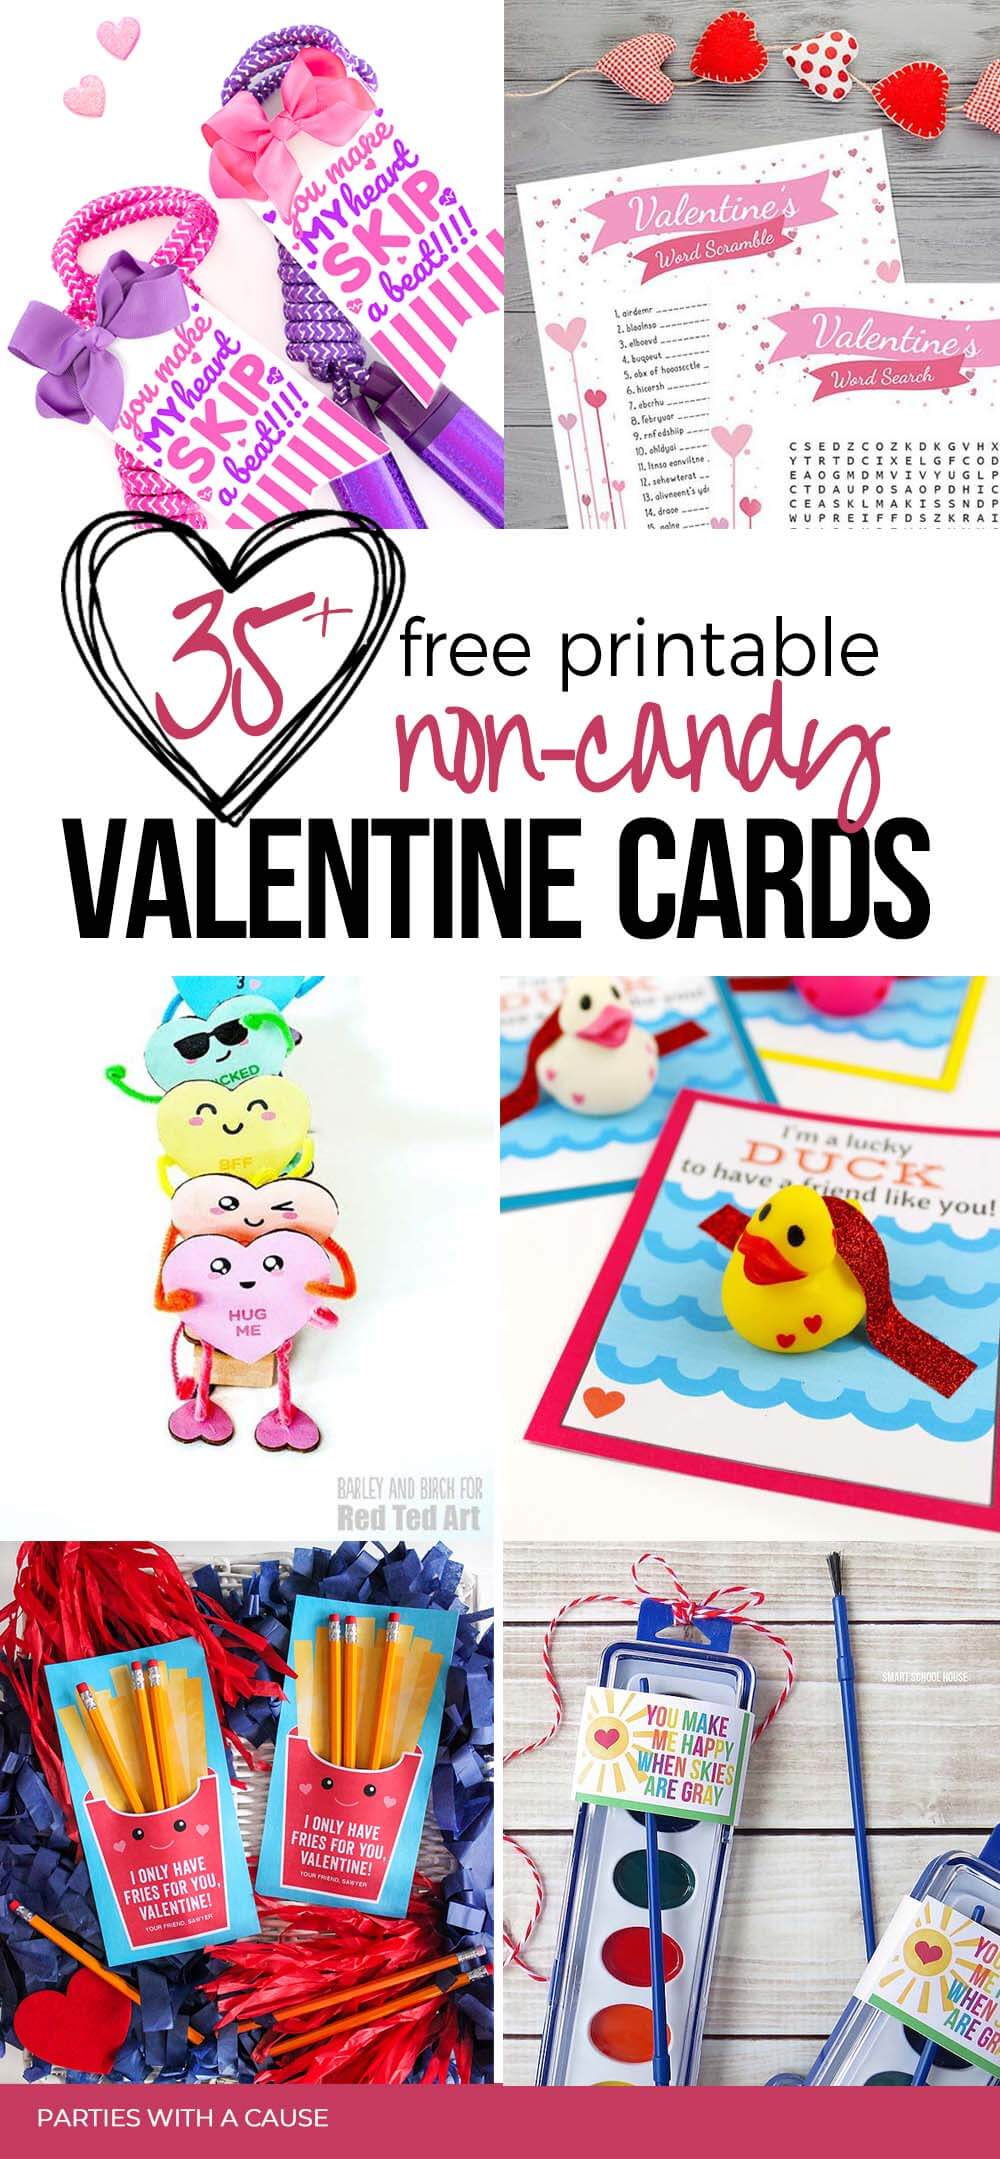 Free Printable Valentines cards non-candy ideas by Salt Lake Party Stylist